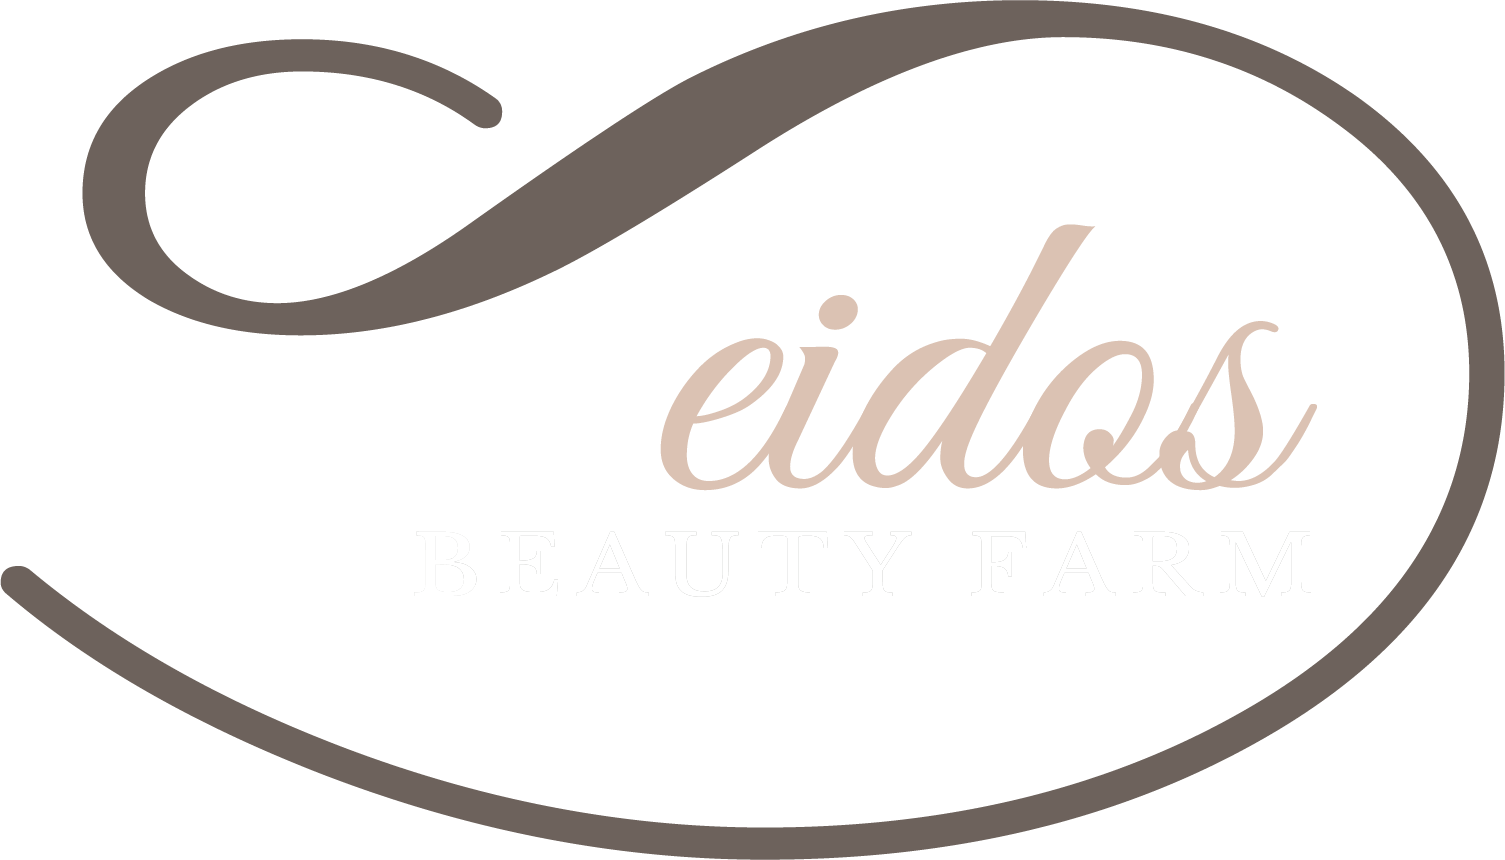 EIDOS BEAUTY FARM